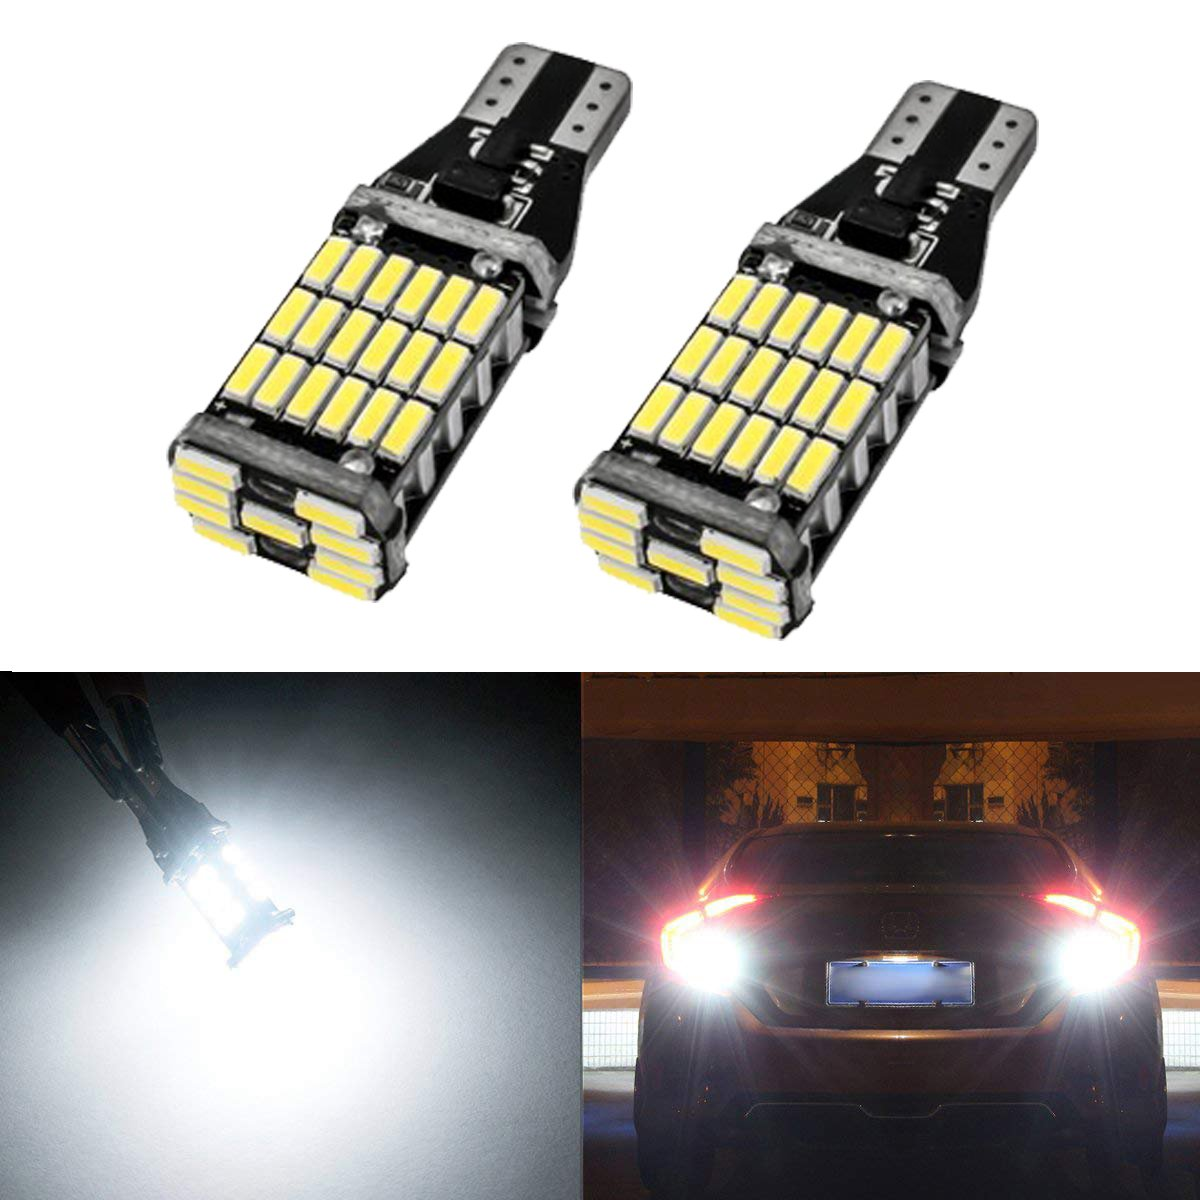 (Set of 4) 2020 Universal LED Taillights - Suitable for various cars